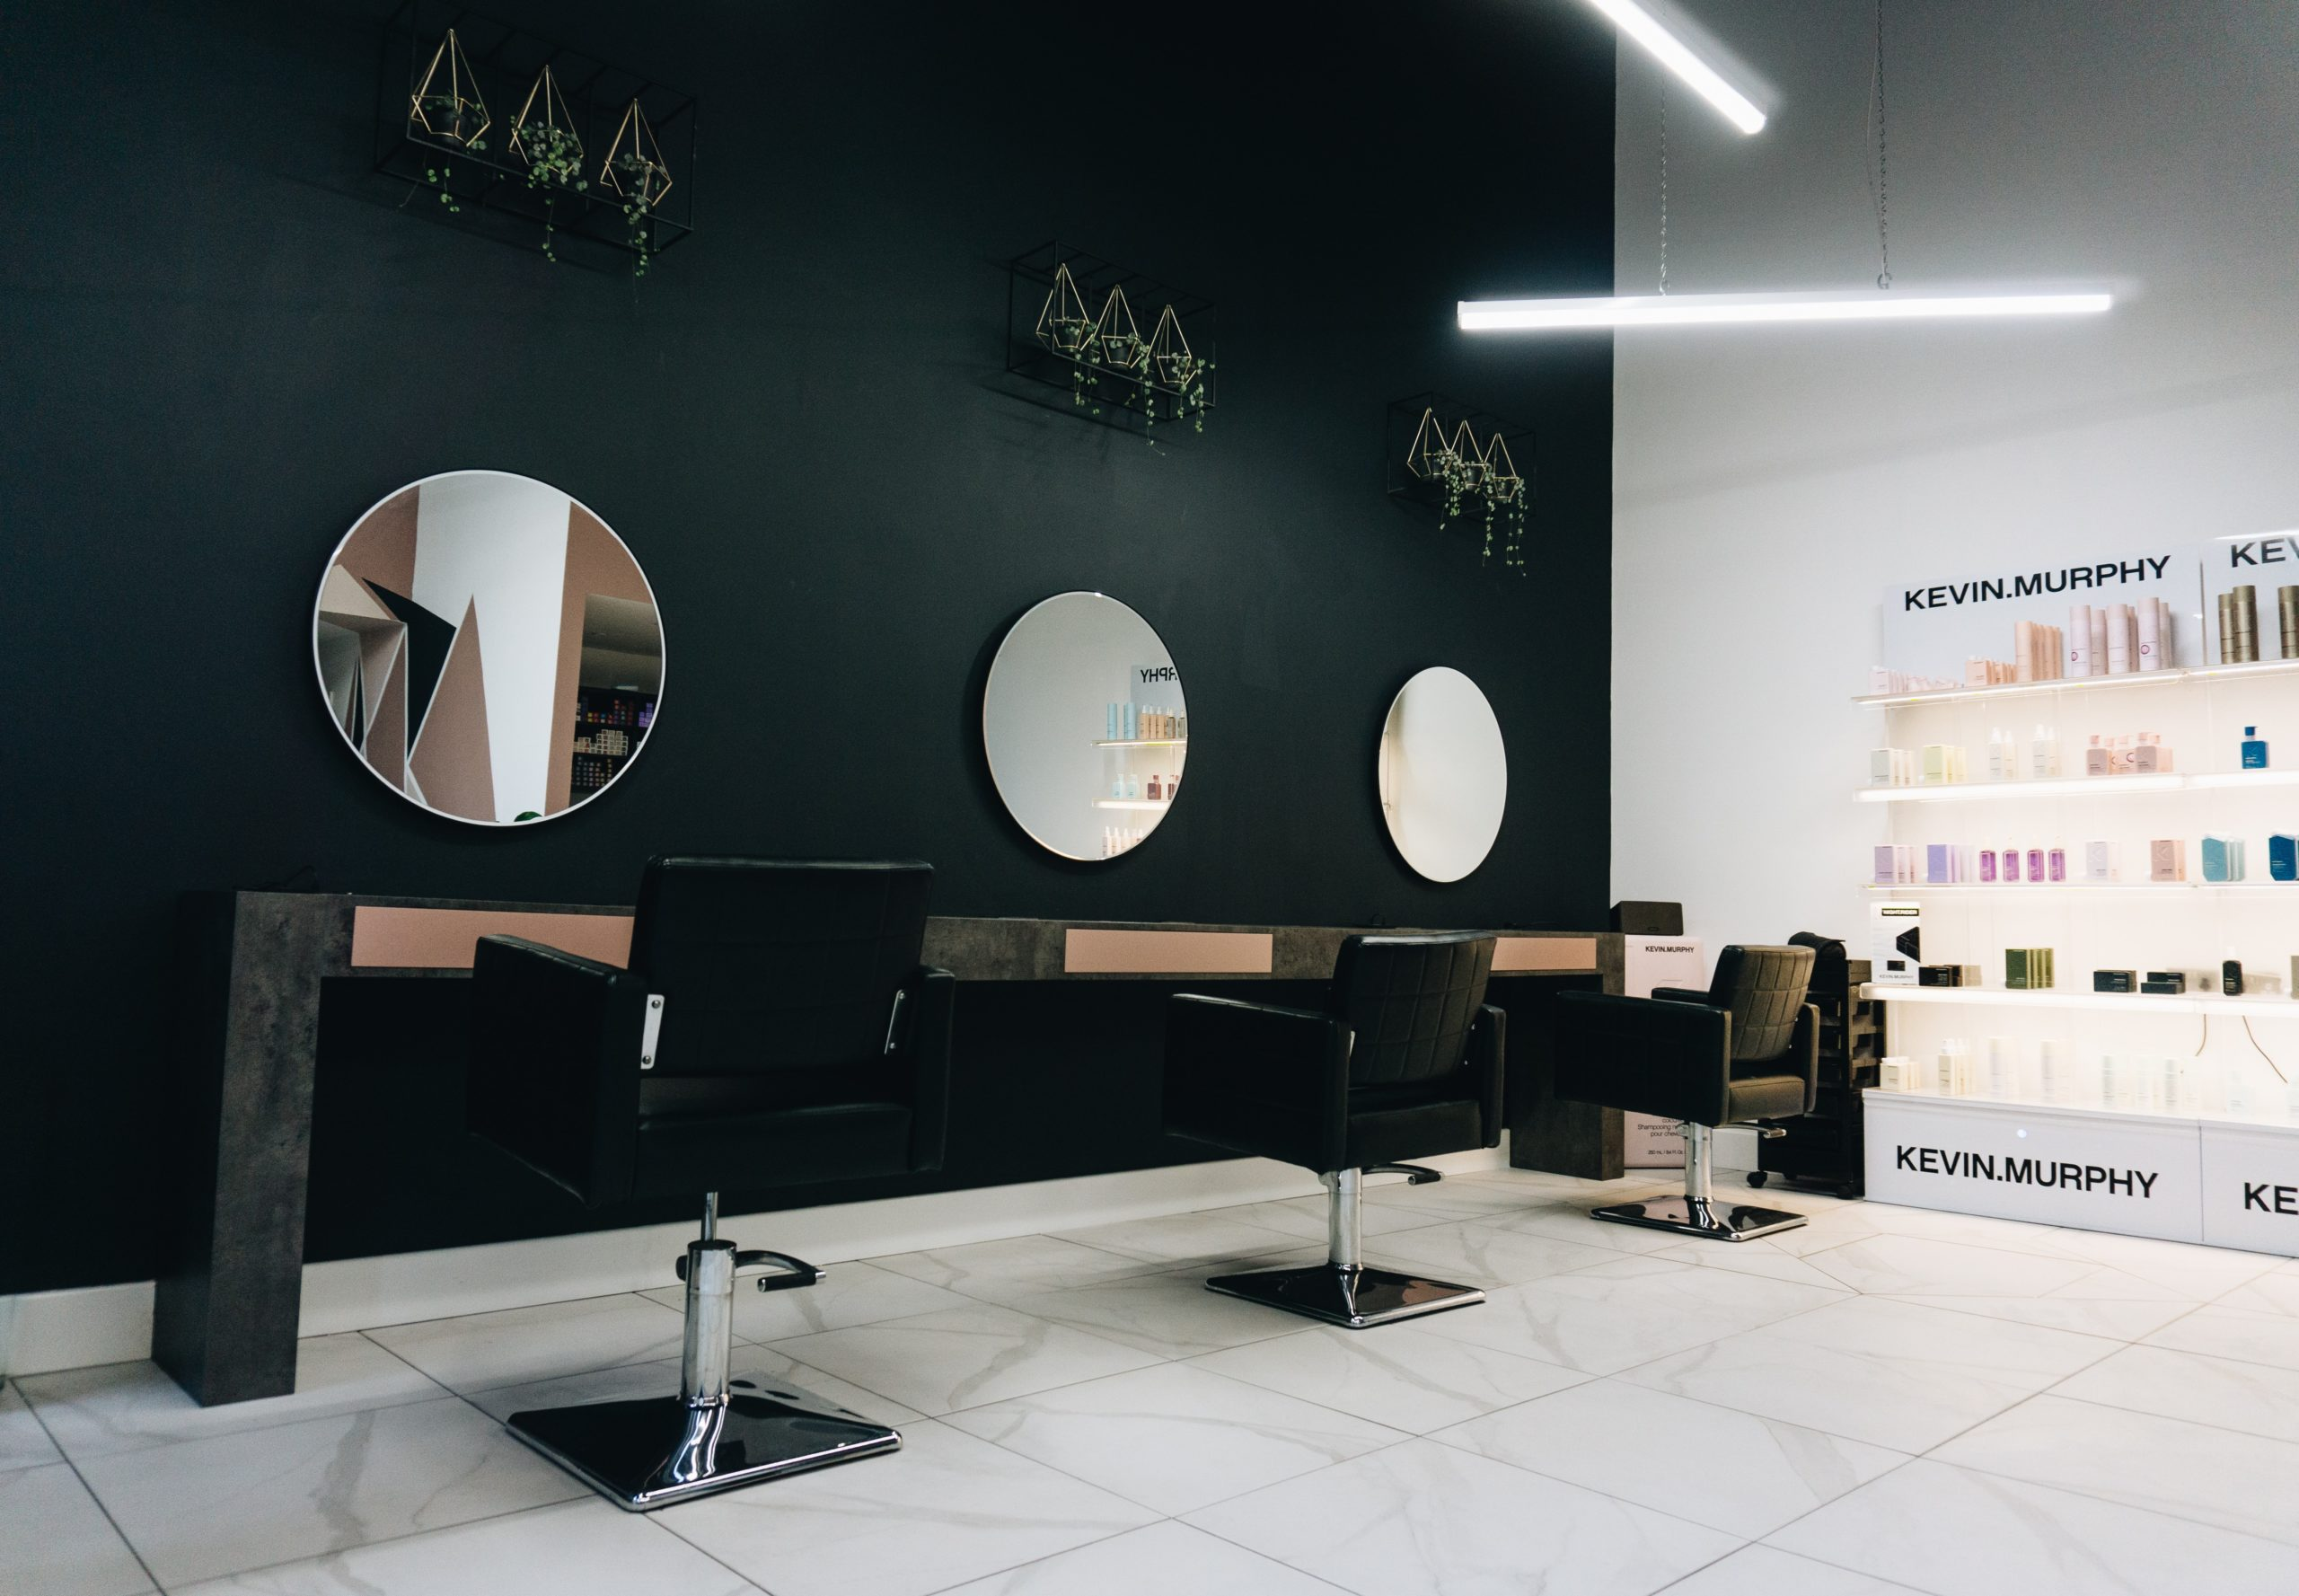 Minimal and modern salon decor ideas, a salon with round mirrors and black walls with decorative plants